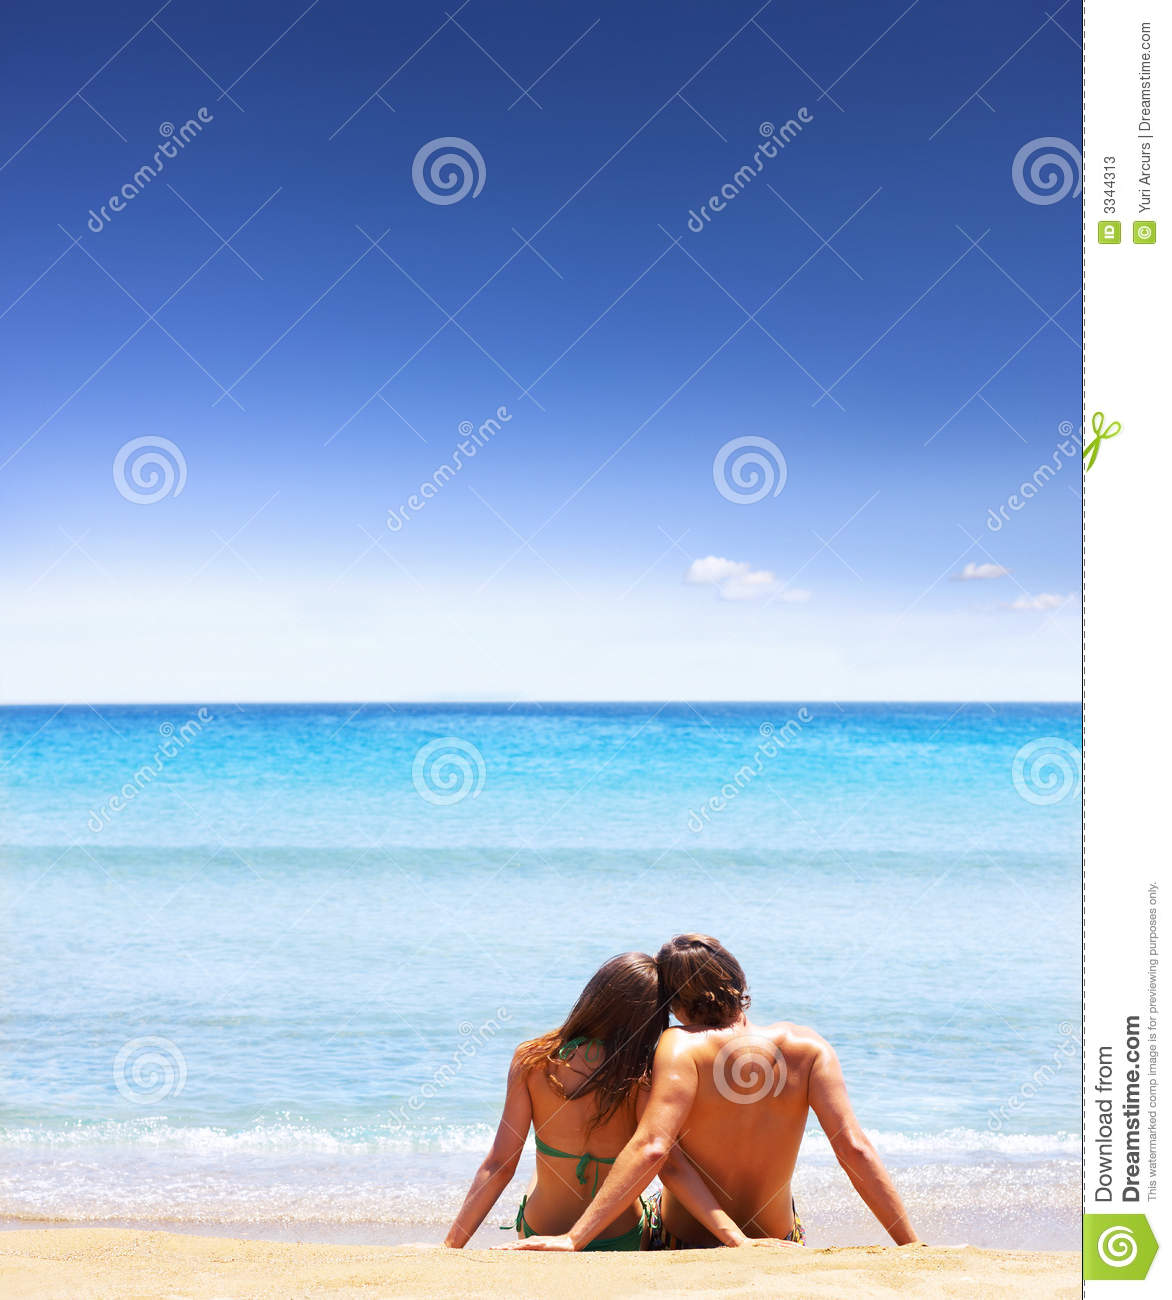 Couple At The Beach Stock Image Image Of Caucasian: Sitting On The Beach Stock Image. Image Of Couple